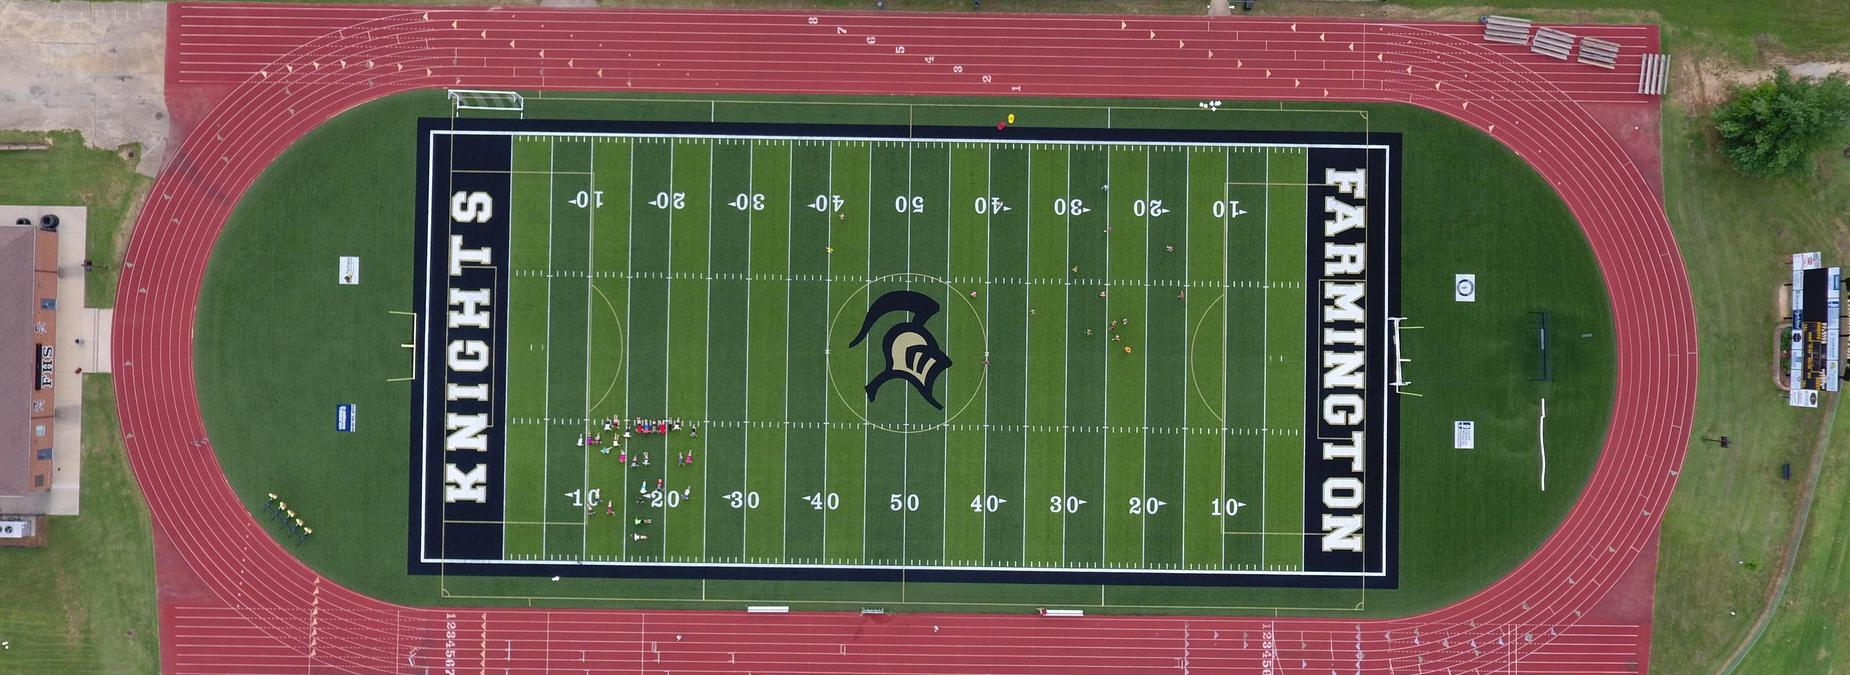 skyview of football field